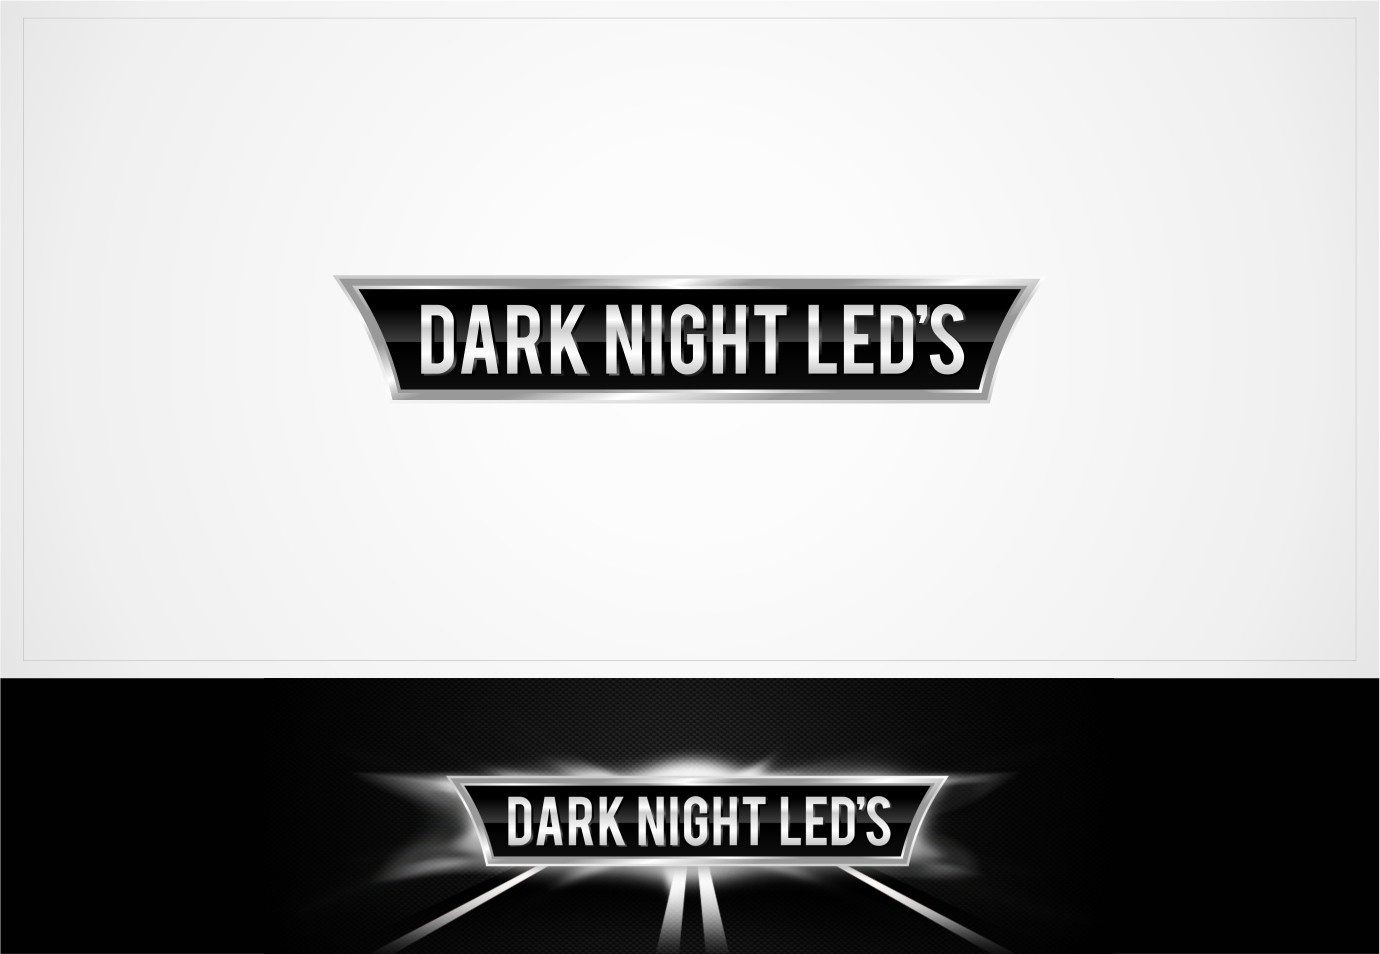 Help DARK NIGHT LED'S with a new logo